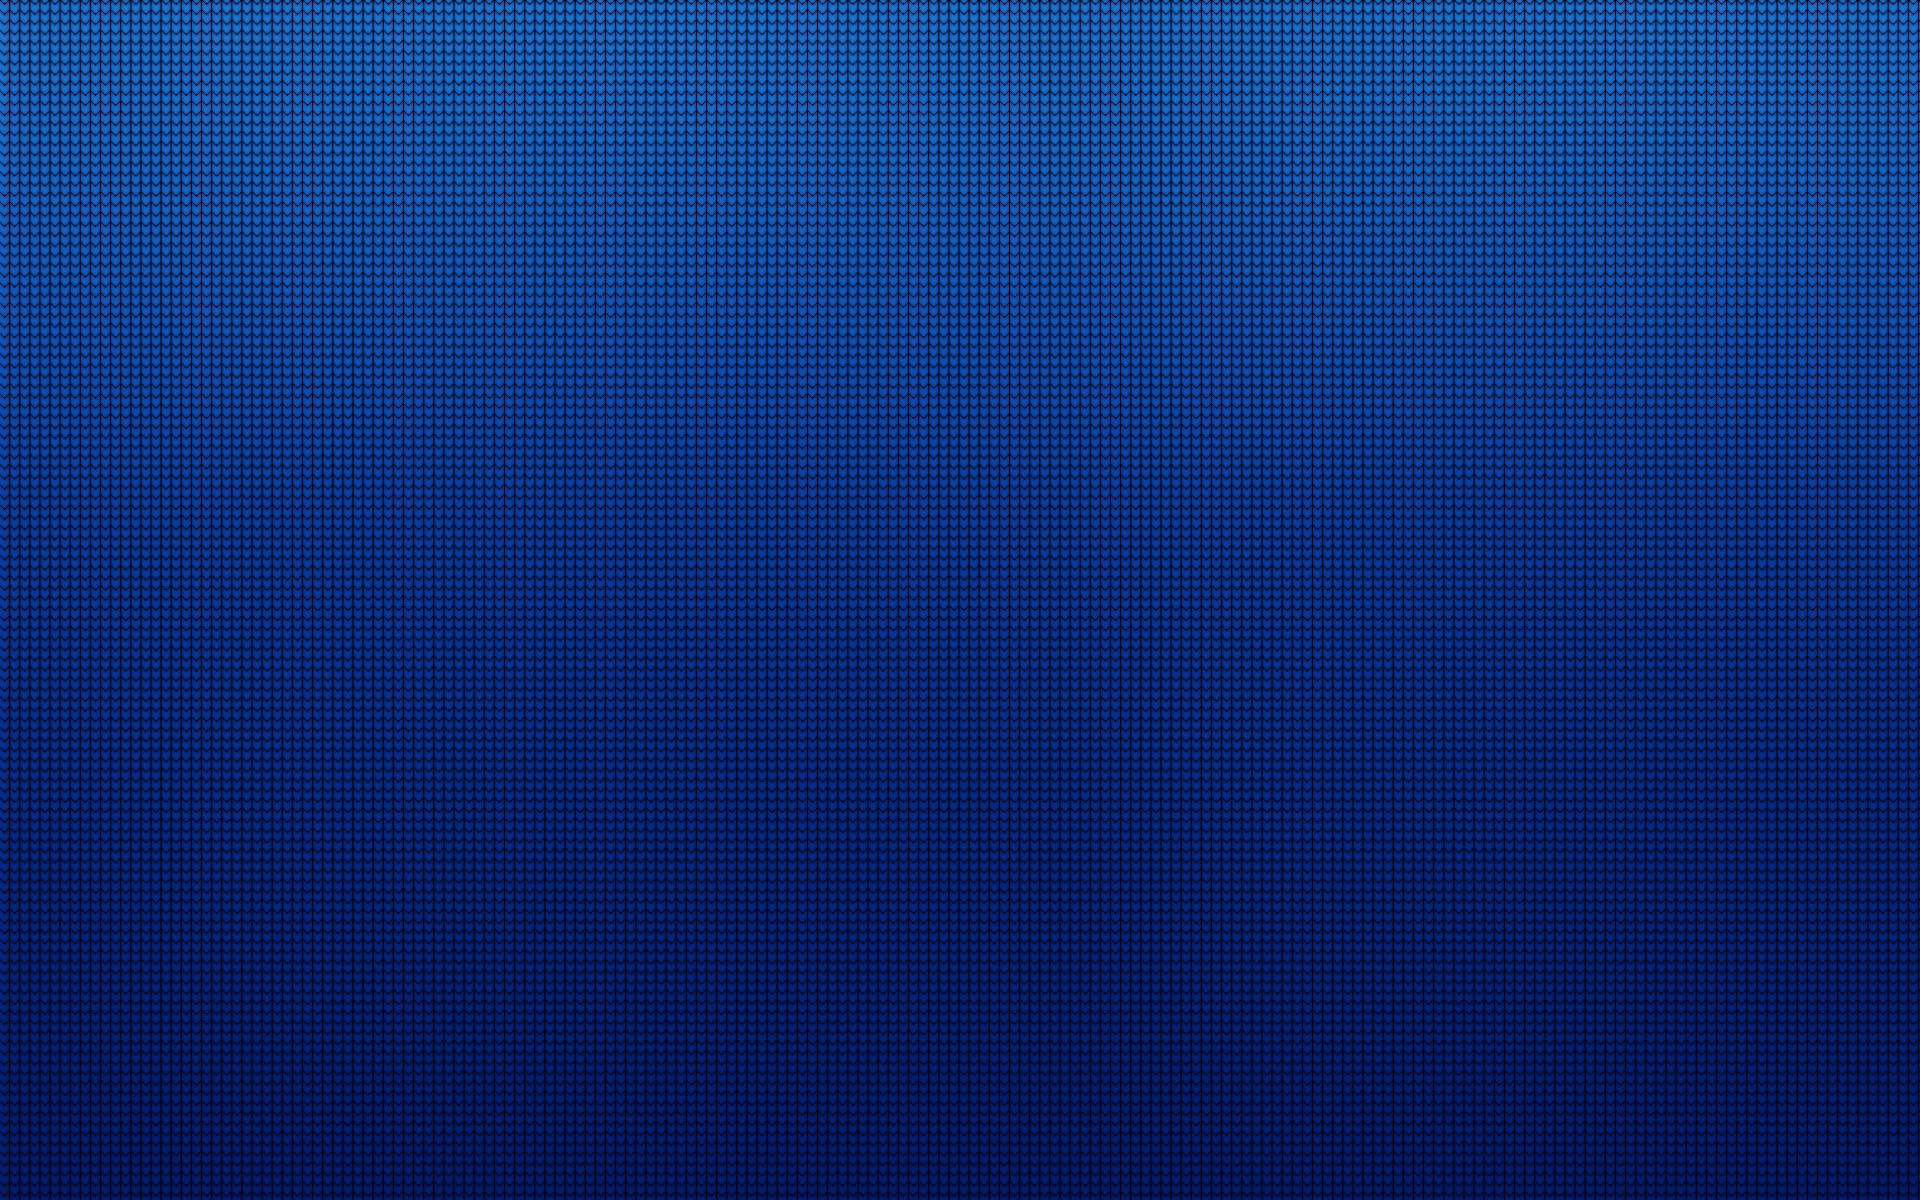 Solid Color Wallpaper for iPhone (64+